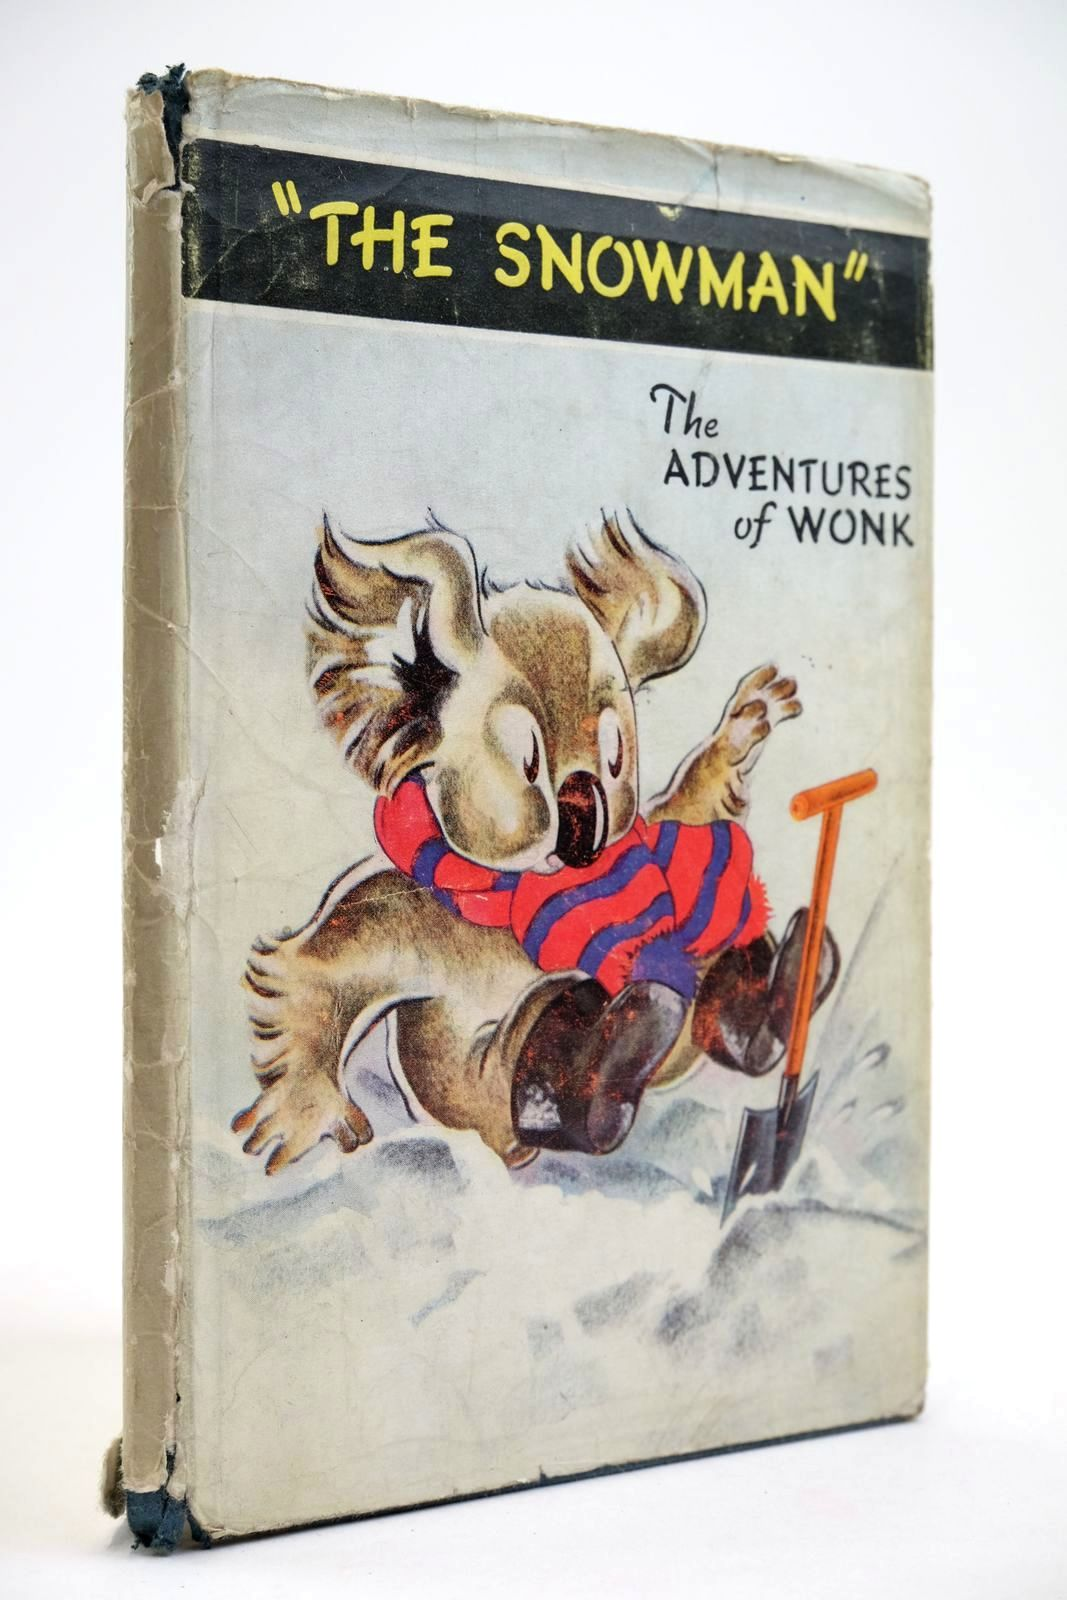 Photo of THE ADVENTURES OF WONK - THE SNOWMAN written by Levy, Muriel illustrated by Kiddell-Monroe, Joan published by Wills & Hepworth Ltd. (STOCK CODE: 2134076)  for sale by Stella & Rose's Books